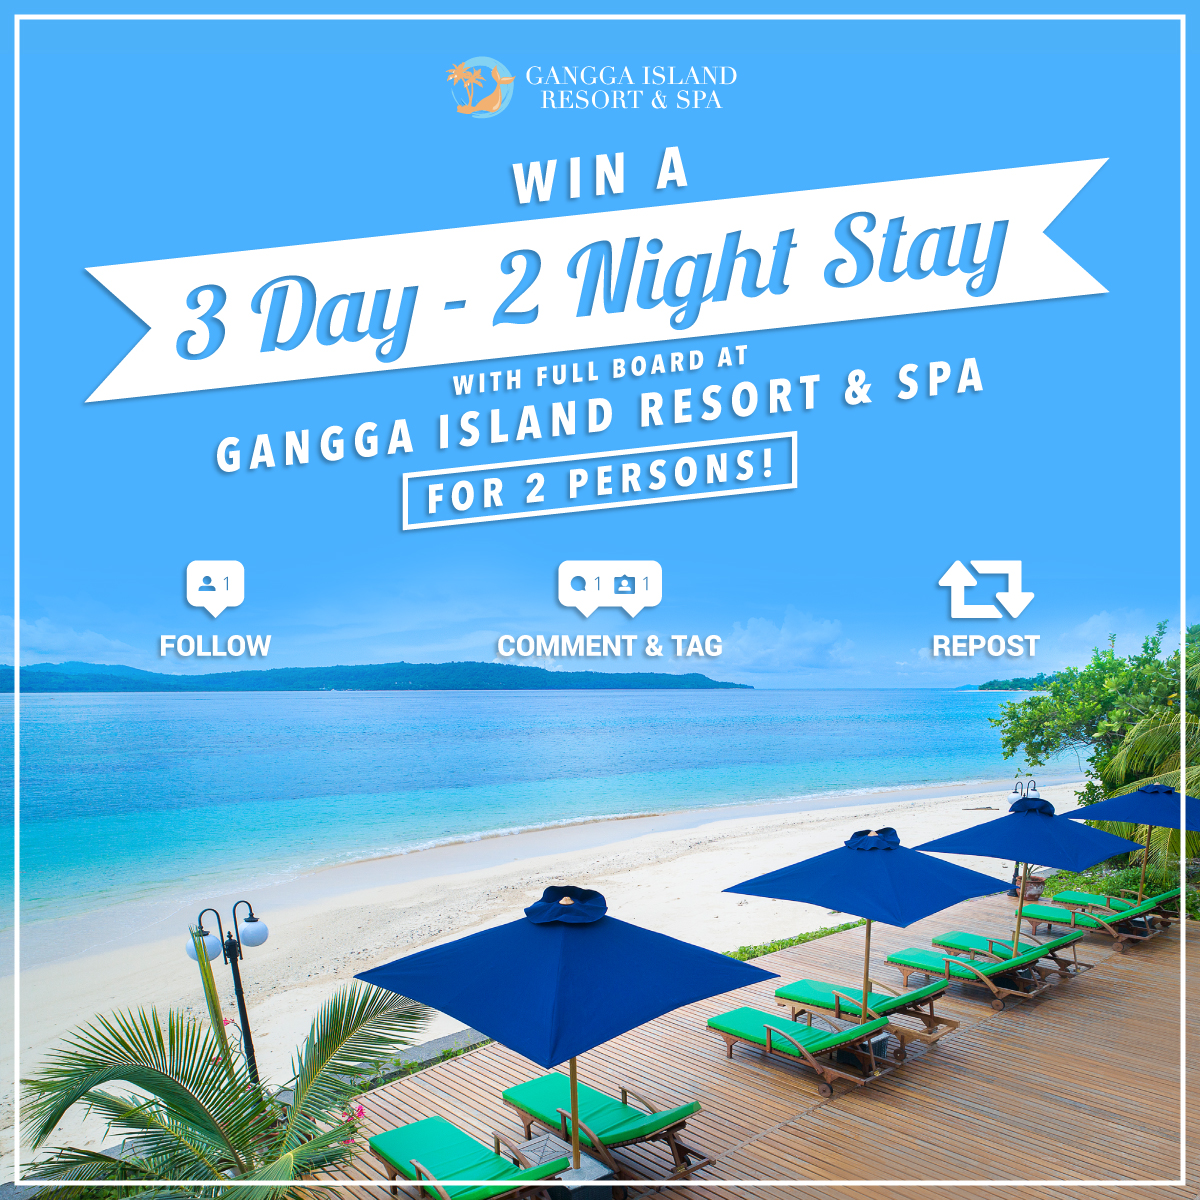 Win a 3 day - 2 night stay with full board at Gangga Island Resort and Spa for 2 persons!